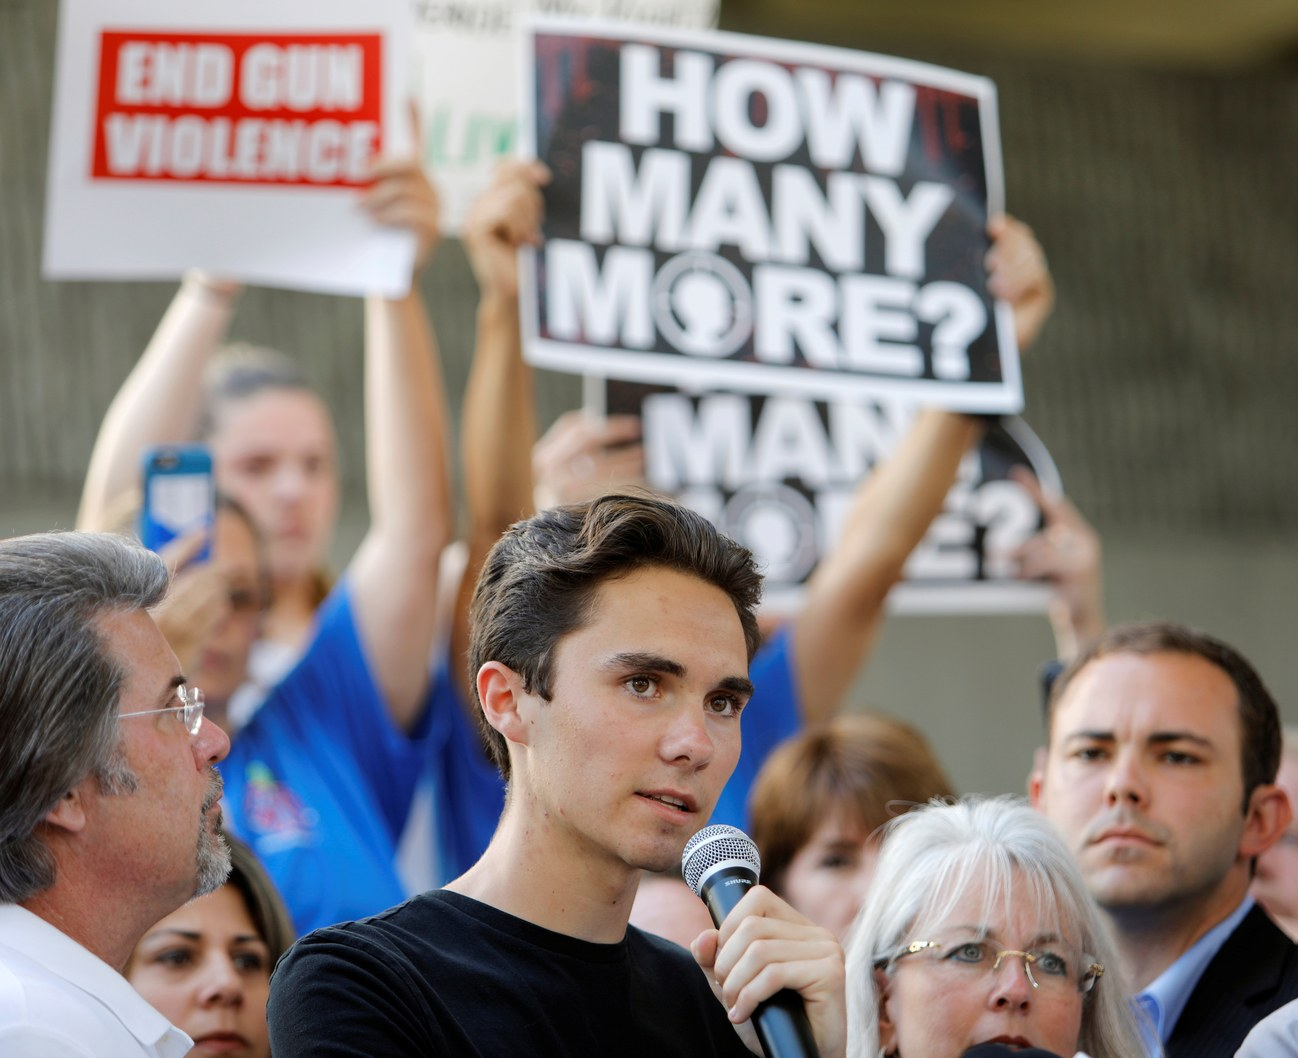 David Hogg, a student at Marjory Stoneman Douglas High, speaks up for gun control. || Jonathan Drake, Reuters.